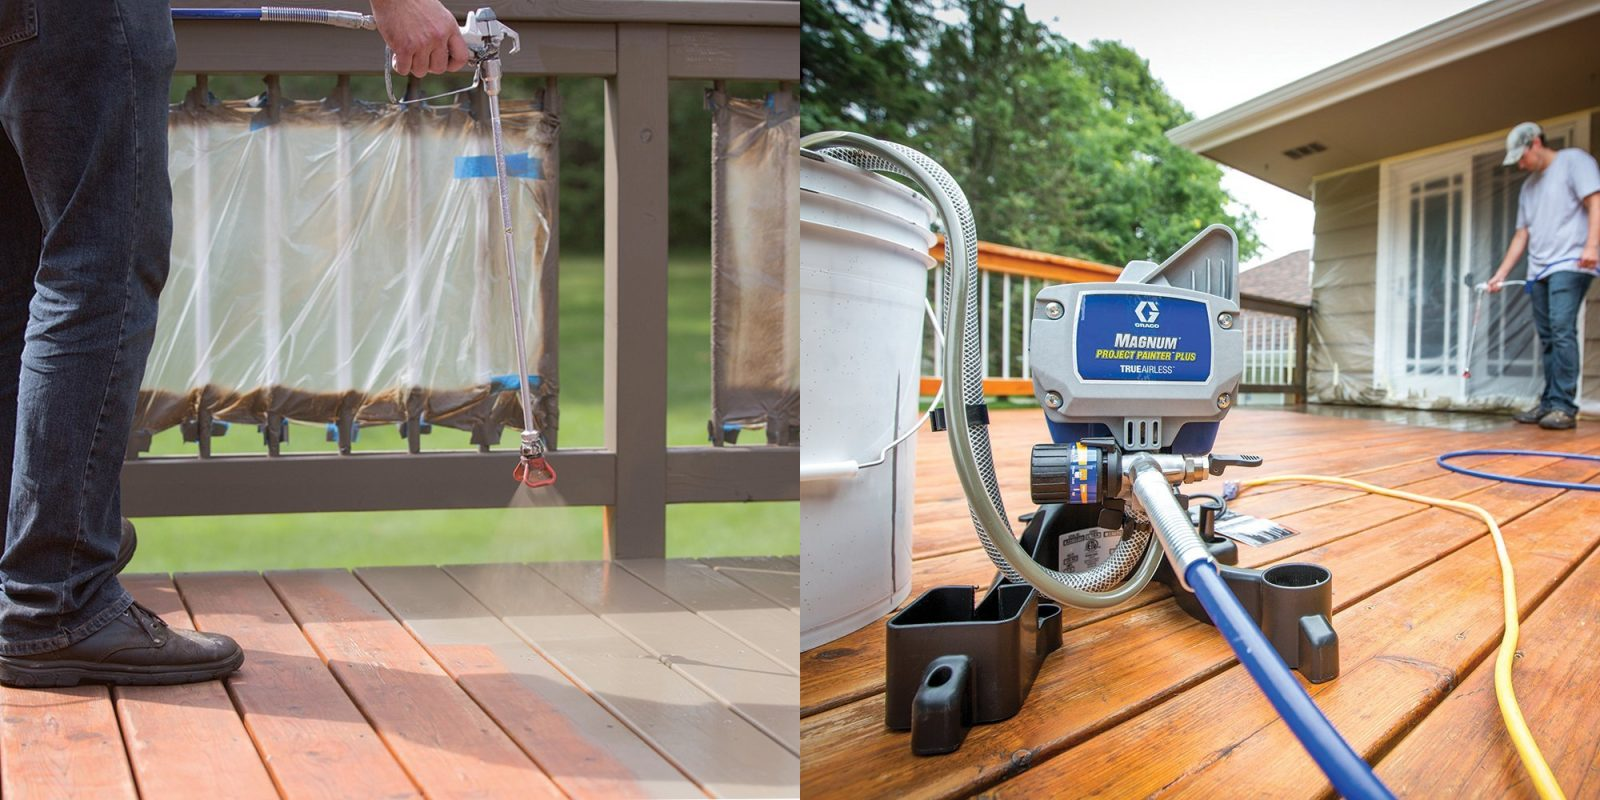 Get your house painted easily w/ Graco's #1 best-selling paint sprayer: $164 (Reg. $225+)